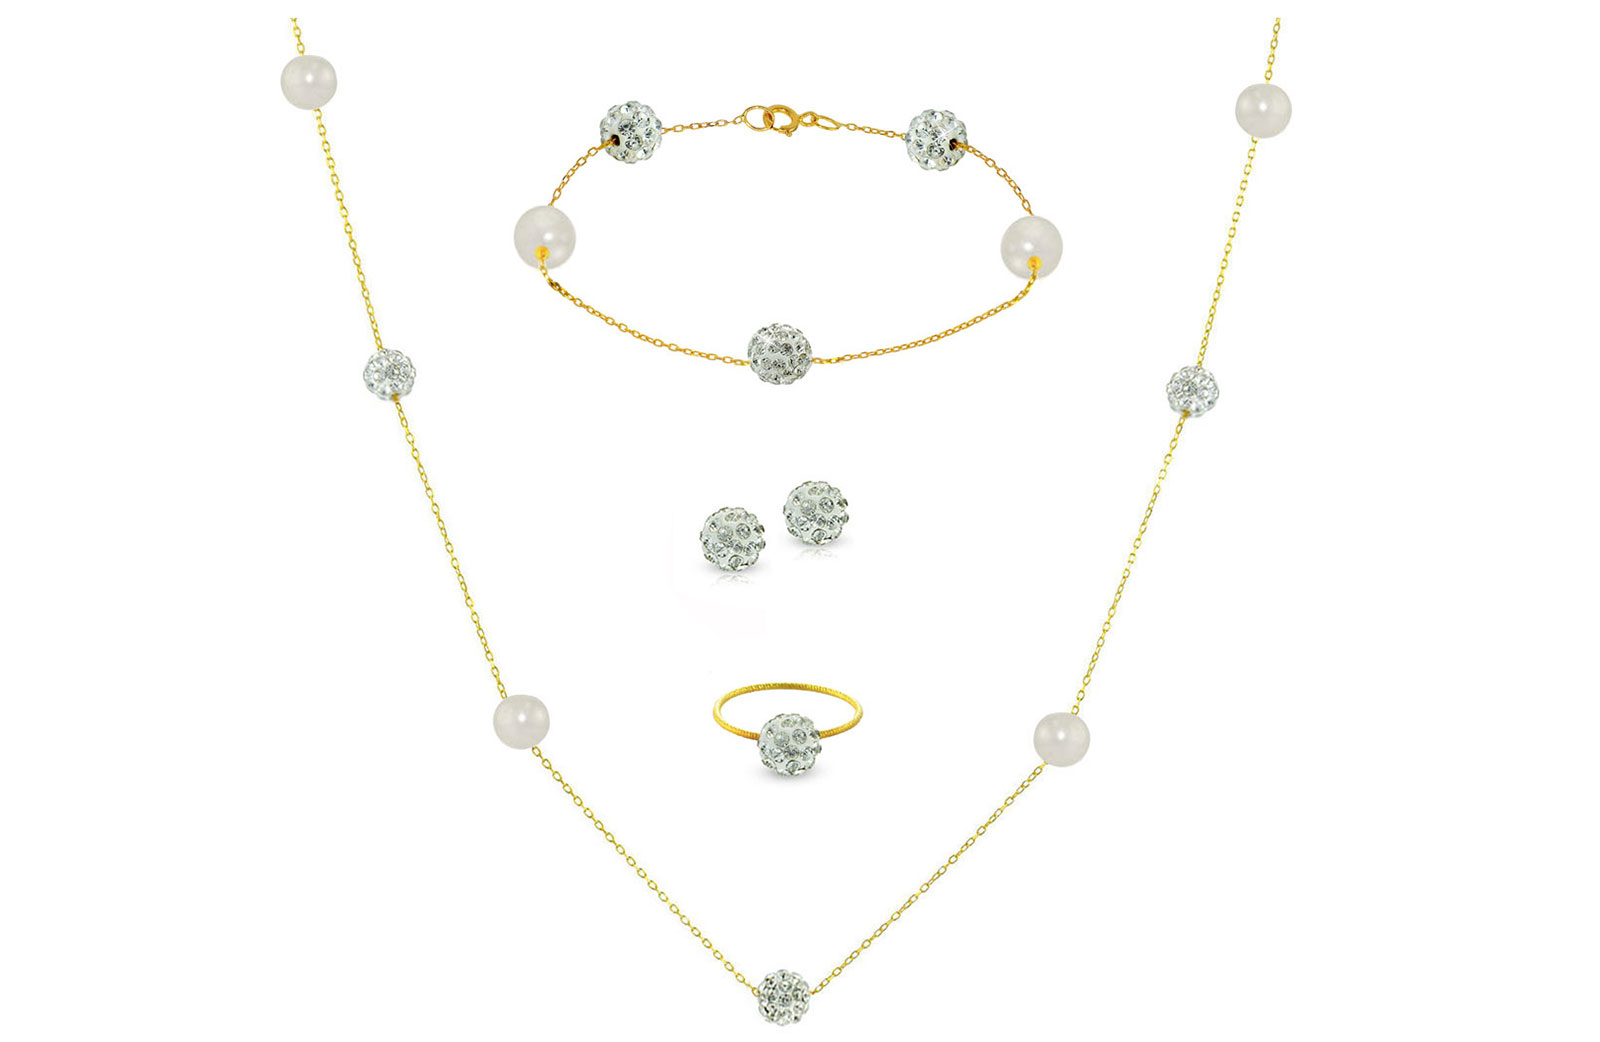 Vera Perla 18K Solid Gold Gradual Built-in 5-6mm Crystal Ball and White Pearls Jewelry Set - 4 pcs.